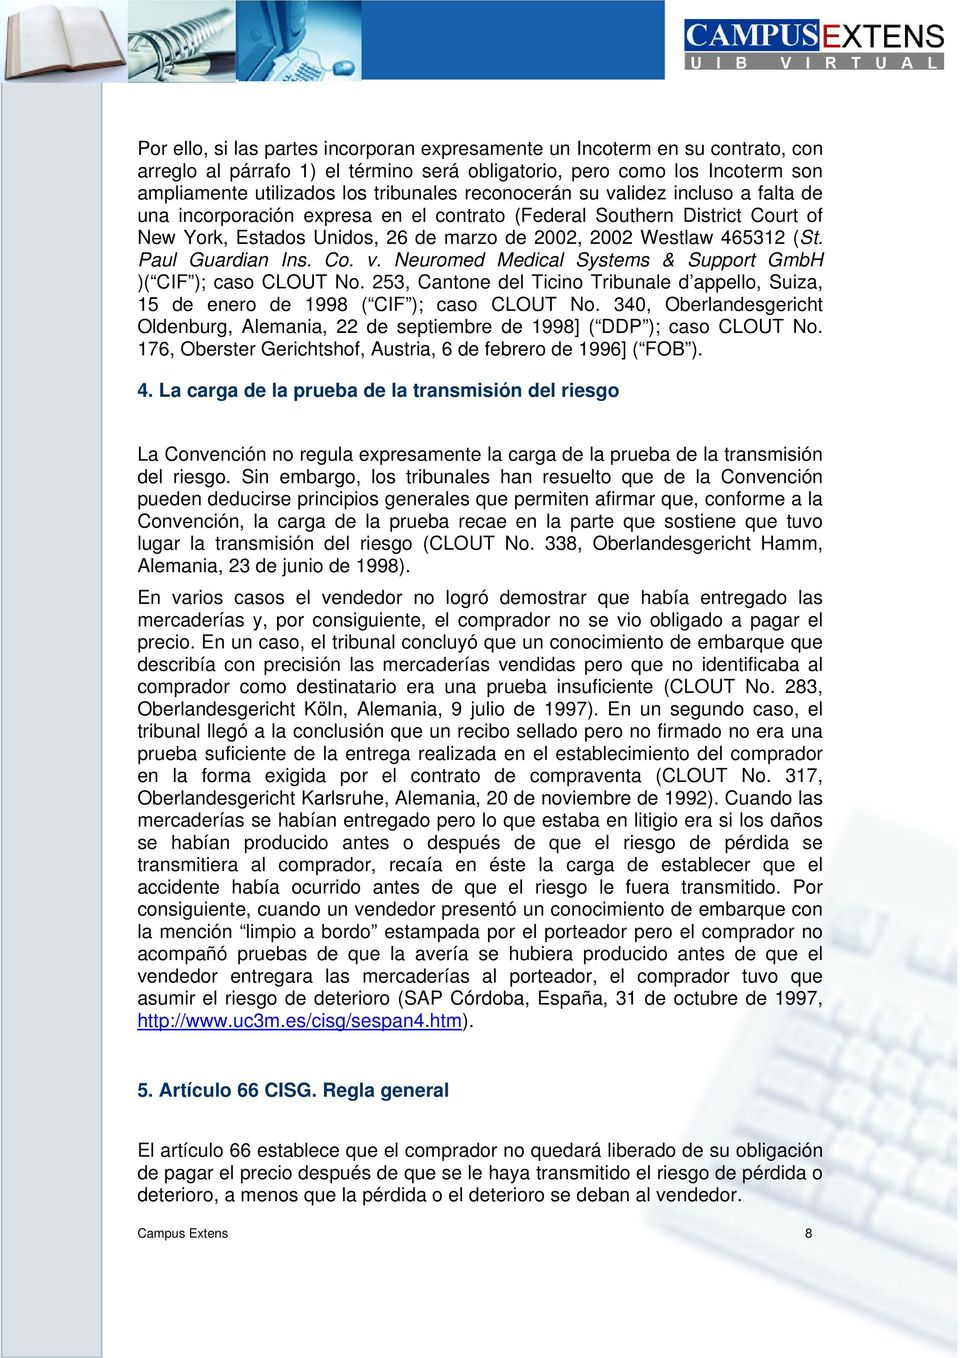 Paul Guardian Ins. Co. v. Neuromed Medical Systems & Support GmbH )( CIF ); caso CLOUT No. 253, Cantone del Ticino Tribunale d appello, Suiza, 15 de enero de 1998 ( CIF ); caso CLOUT No.